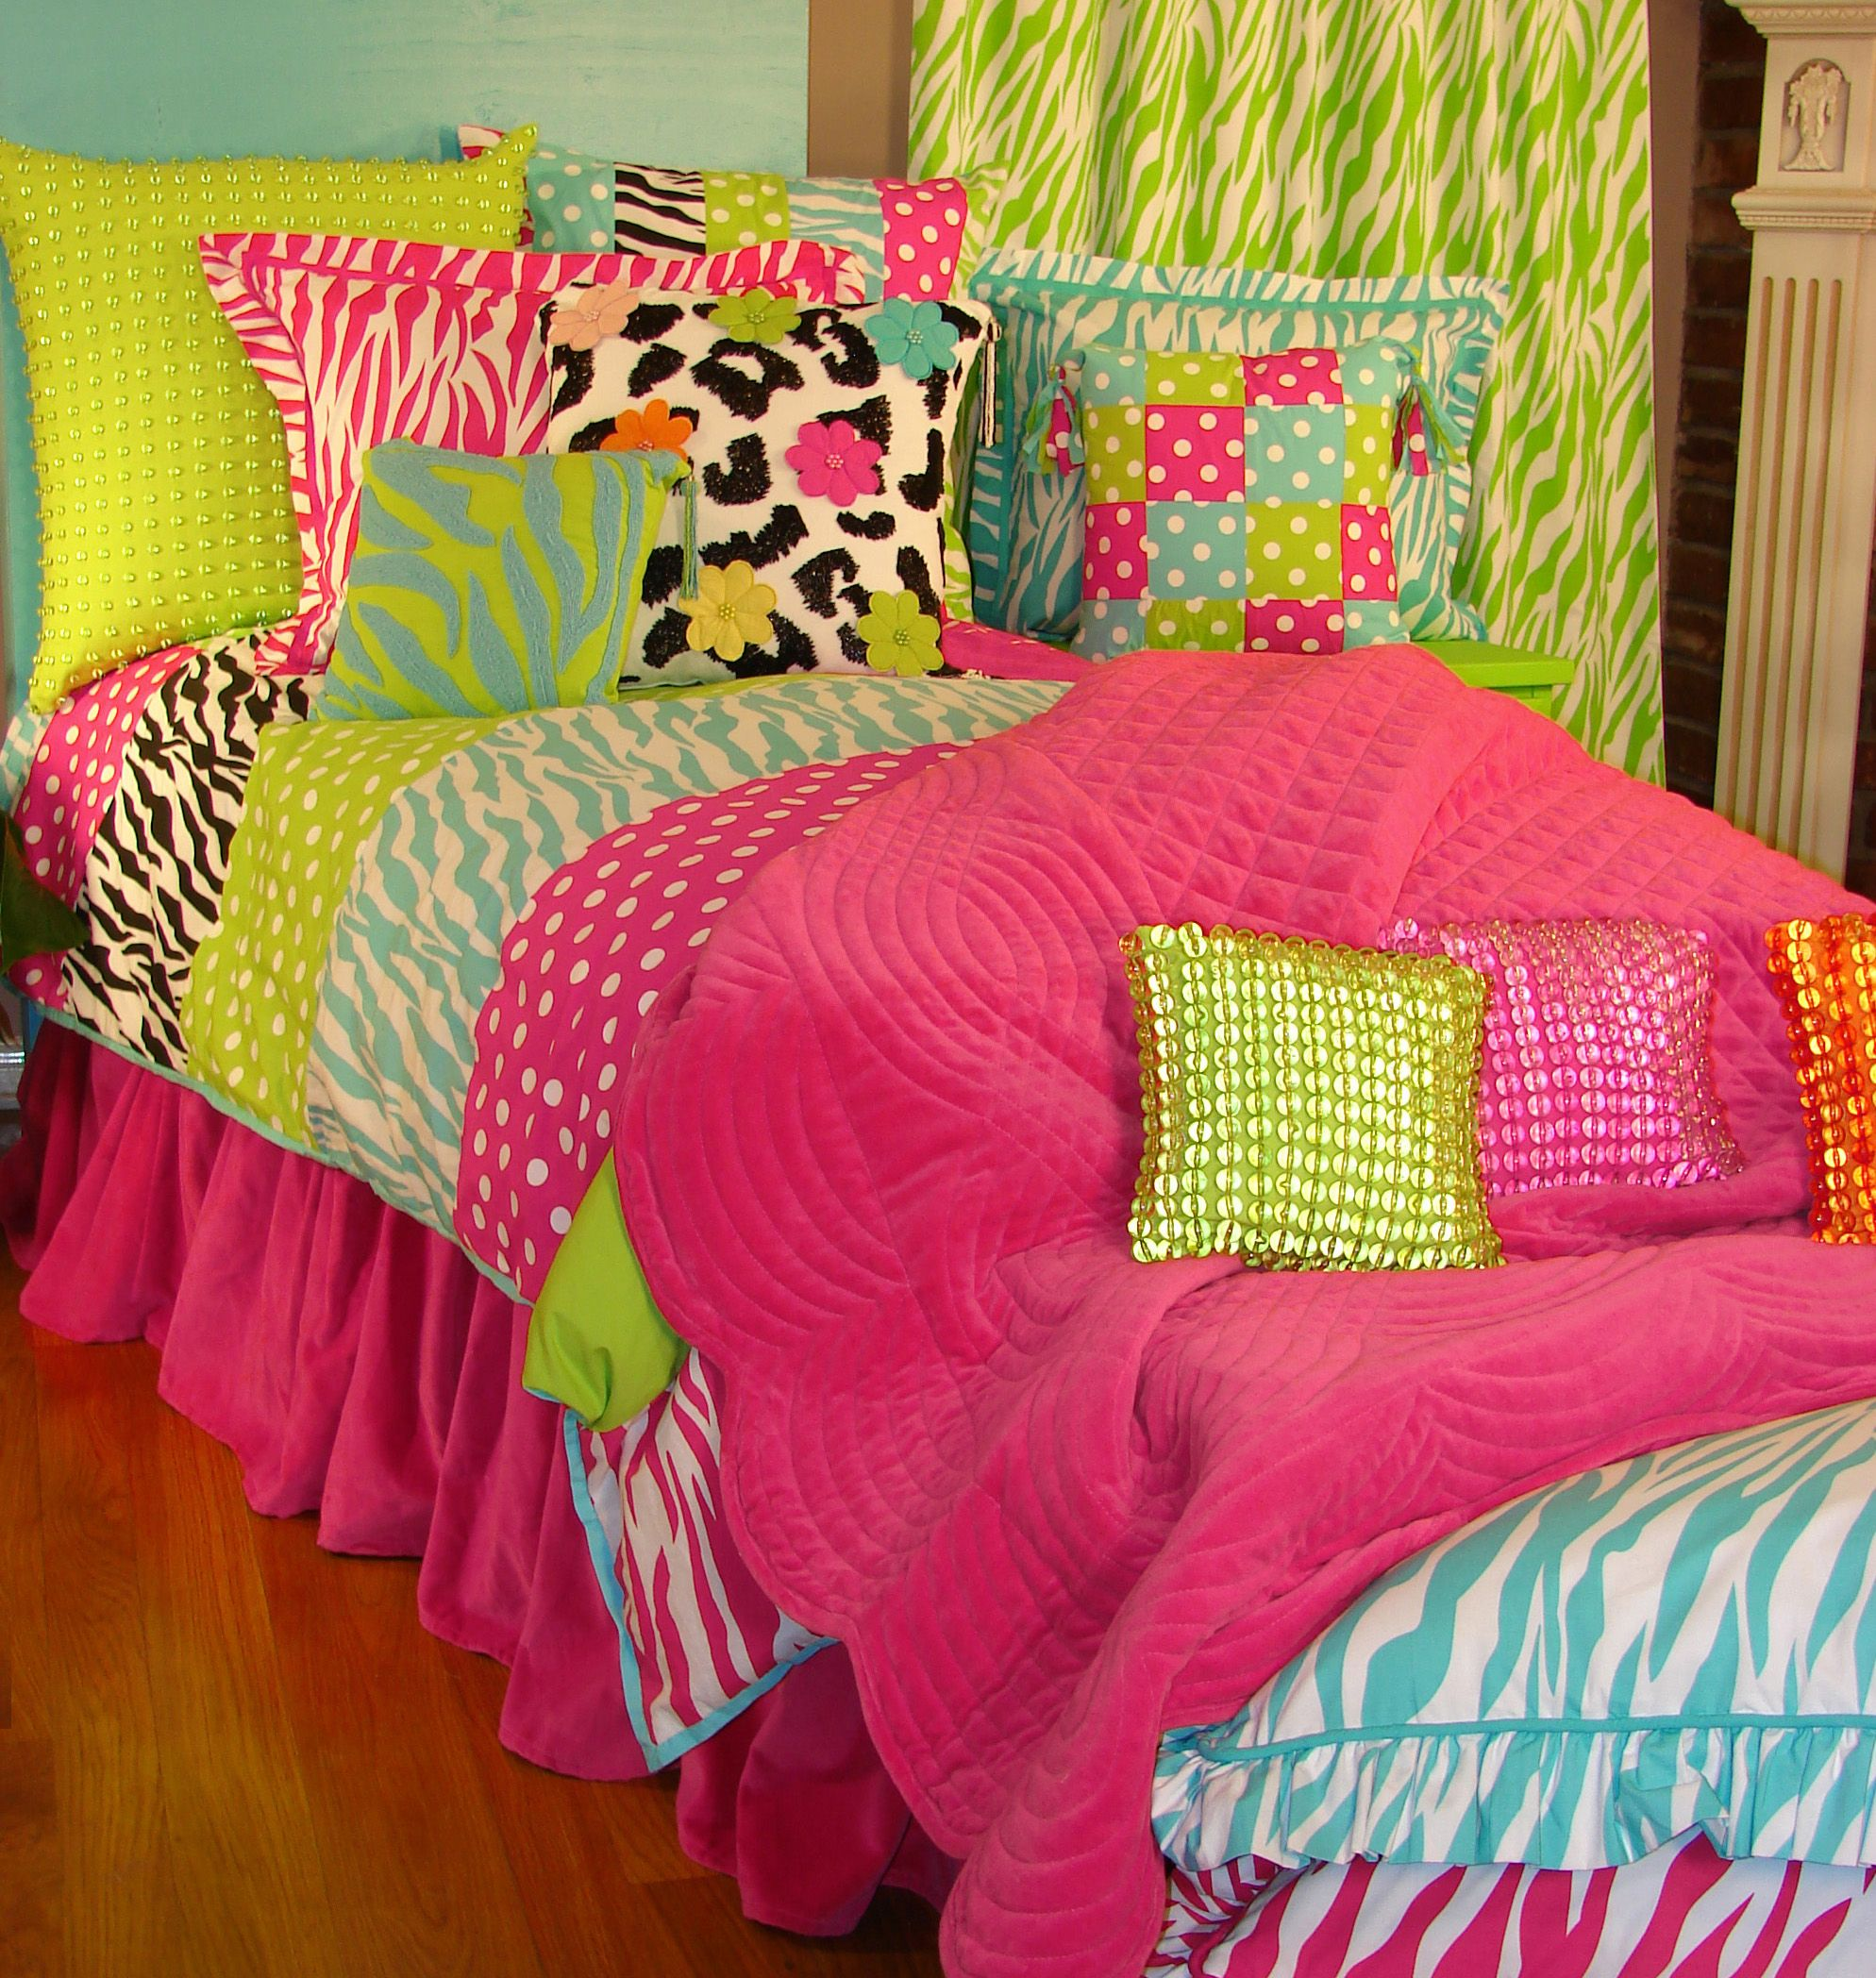 dye tie pin bedding ideas bright tween bed bedroom colors in and teen